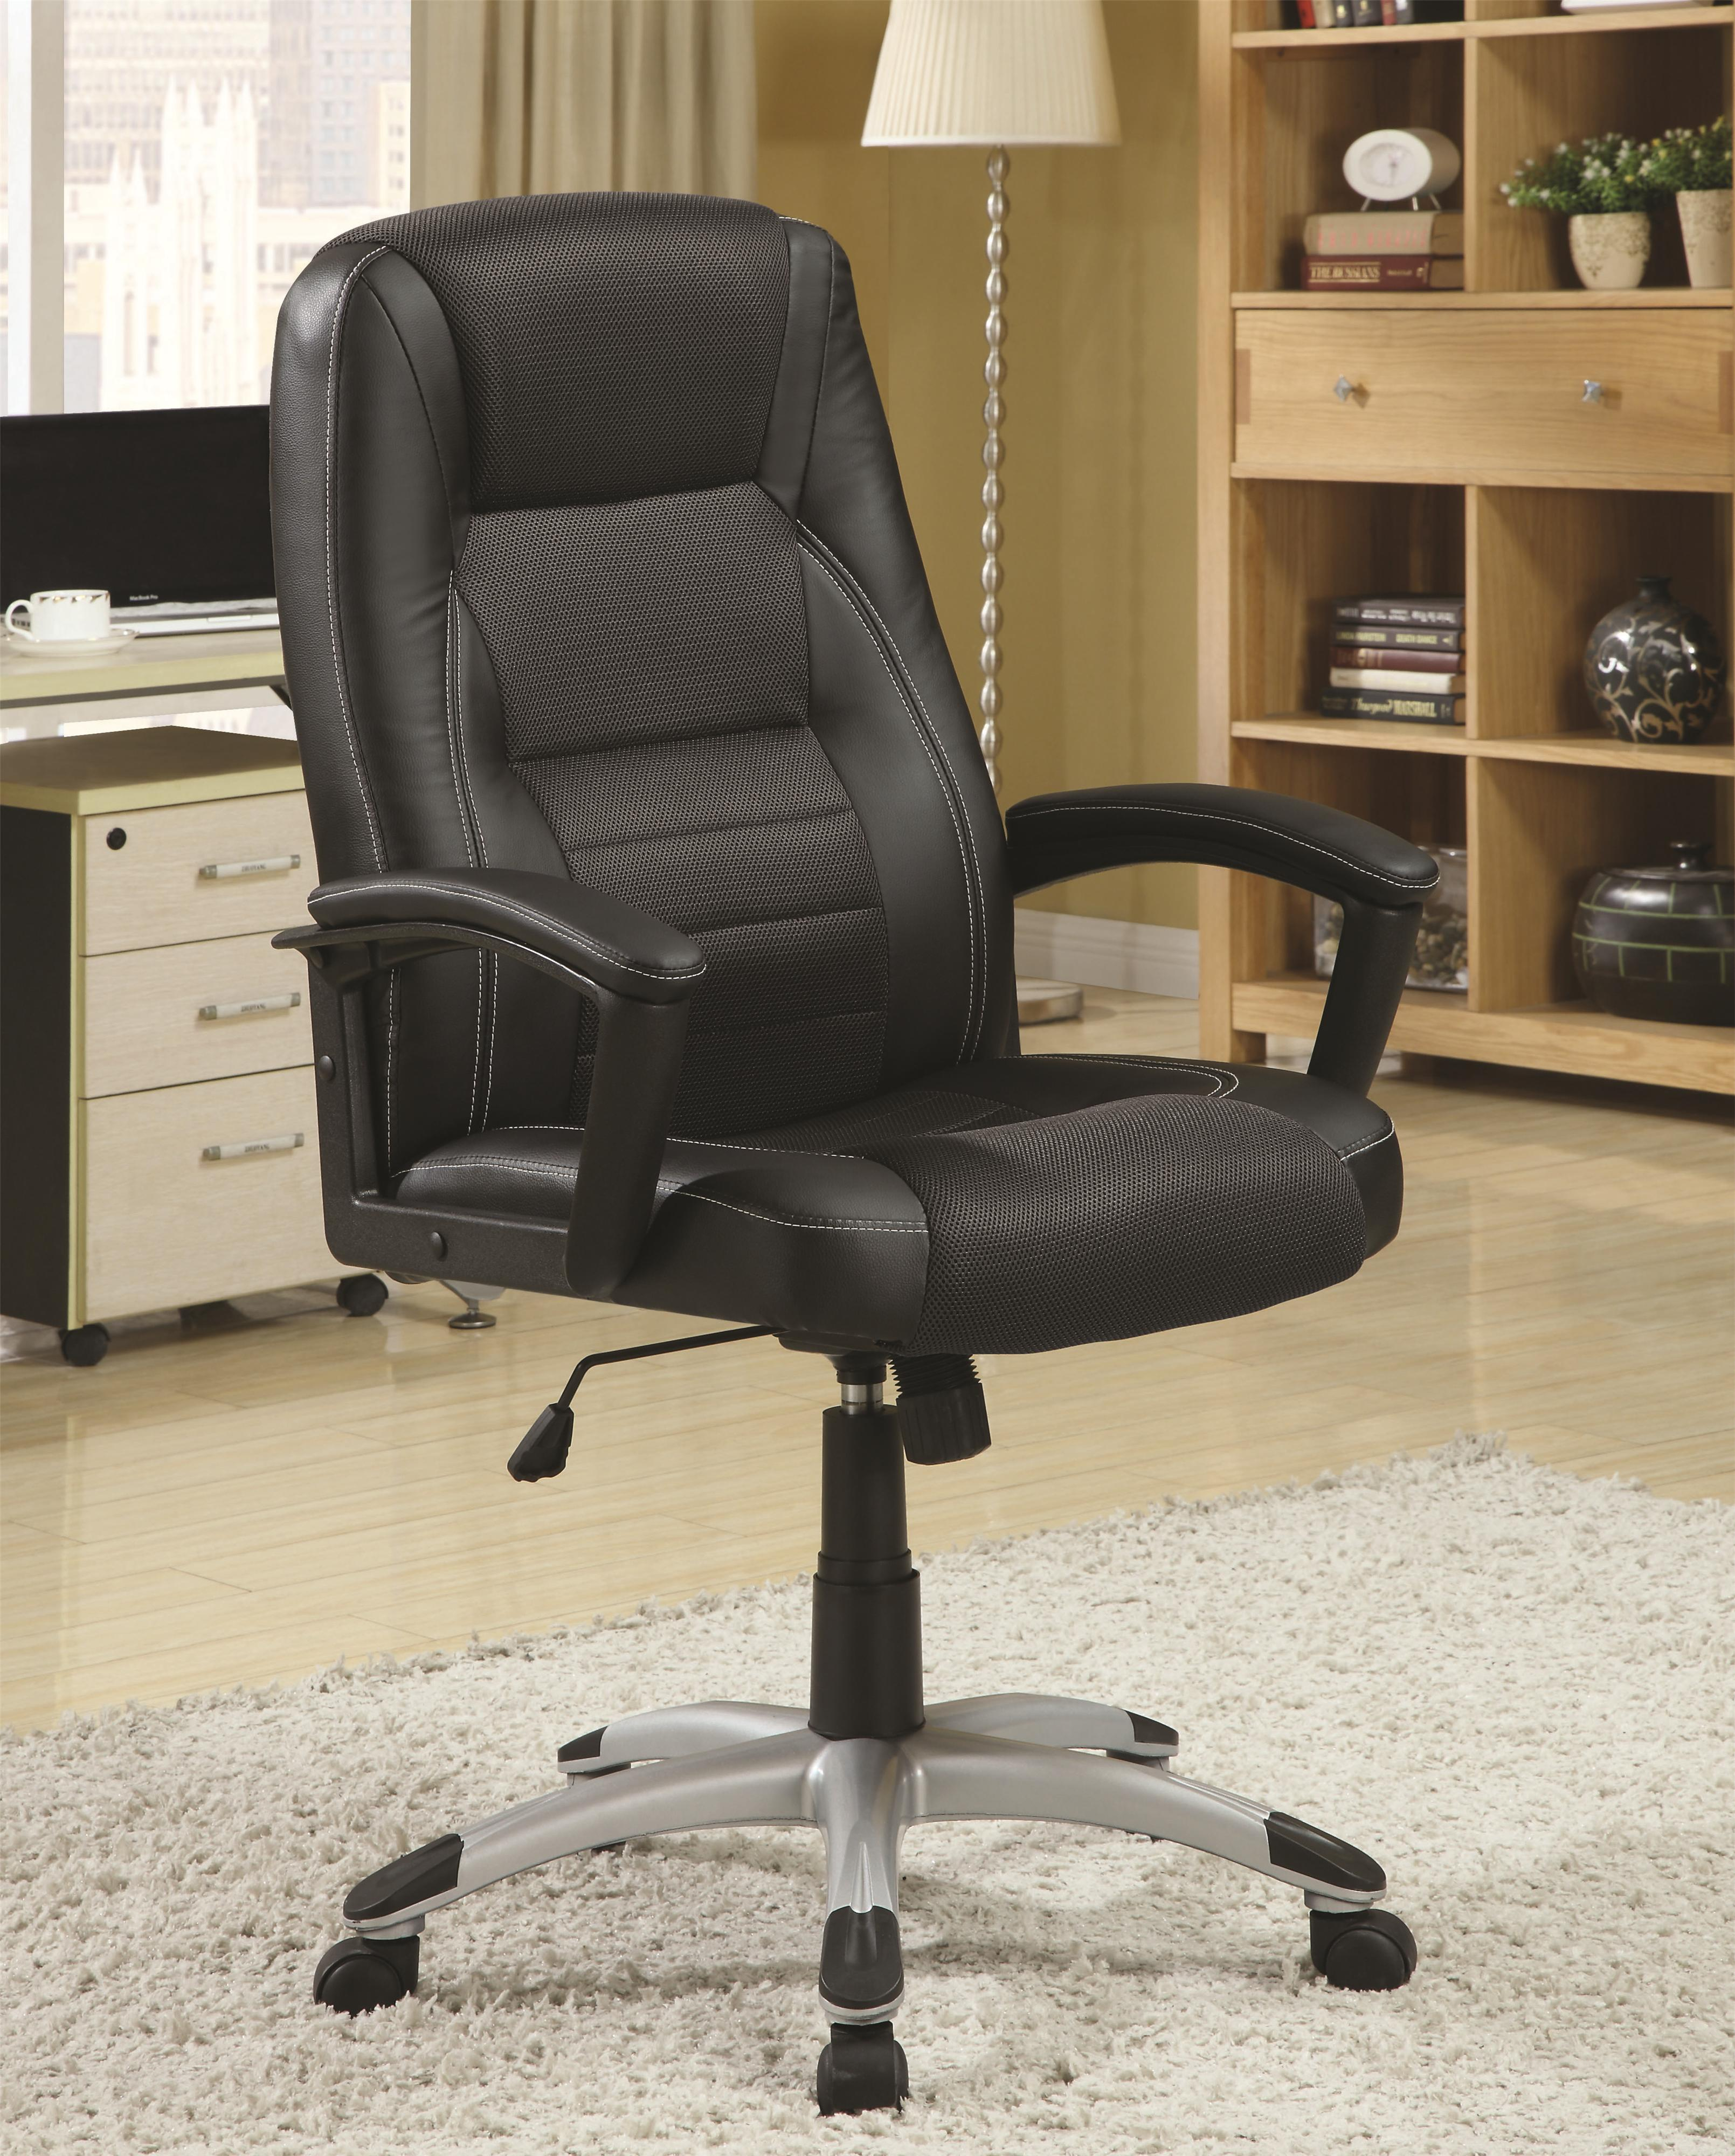 Coaster Office Chairs 800209 Executive Office Chair with